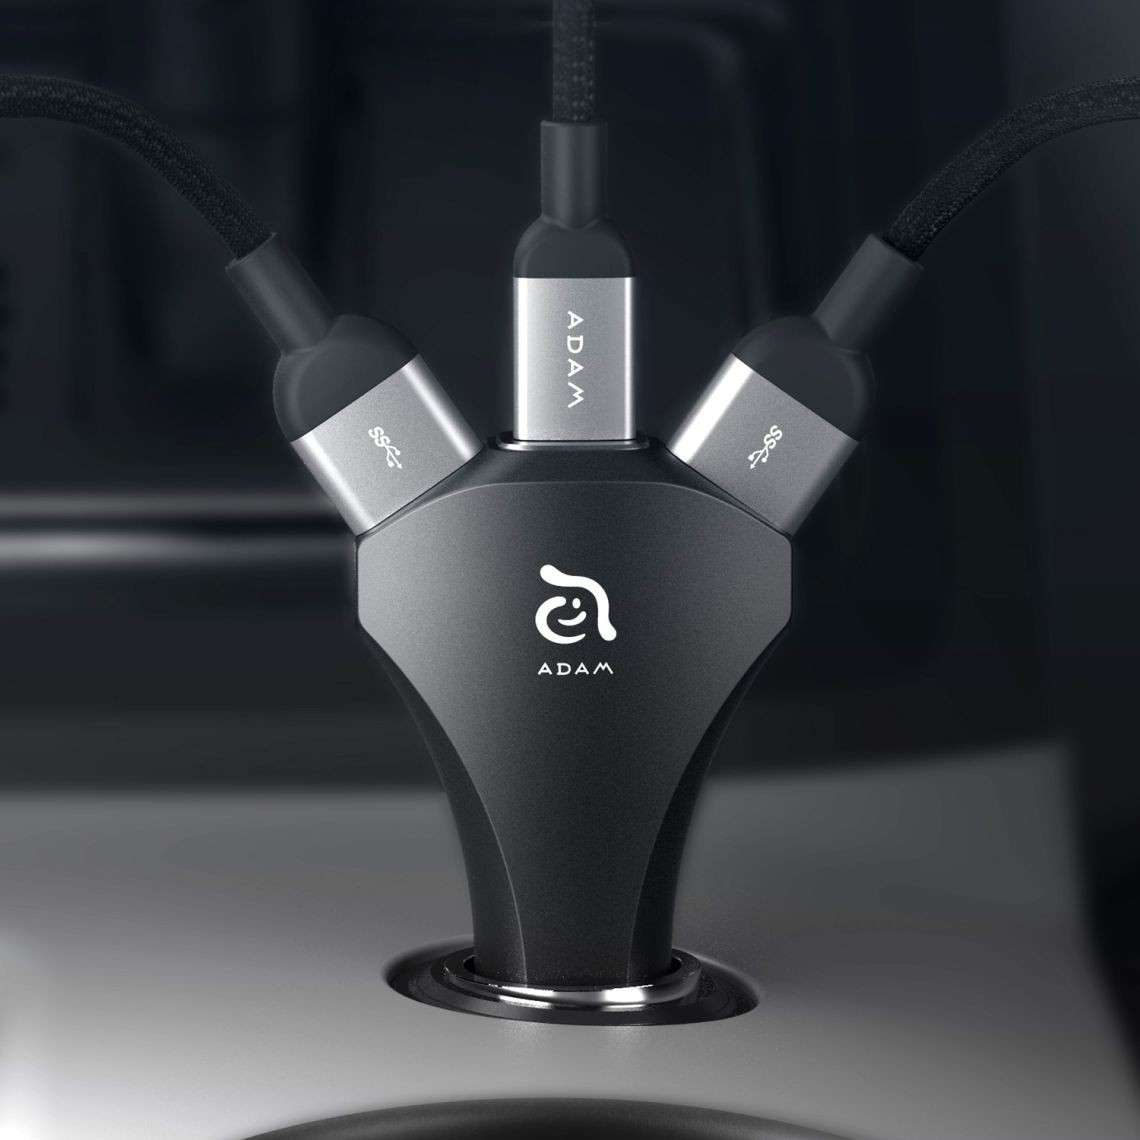 Adam Elements CASA CO3 dual USB and USB Type-C car charger - Black, ACCADCO3BK